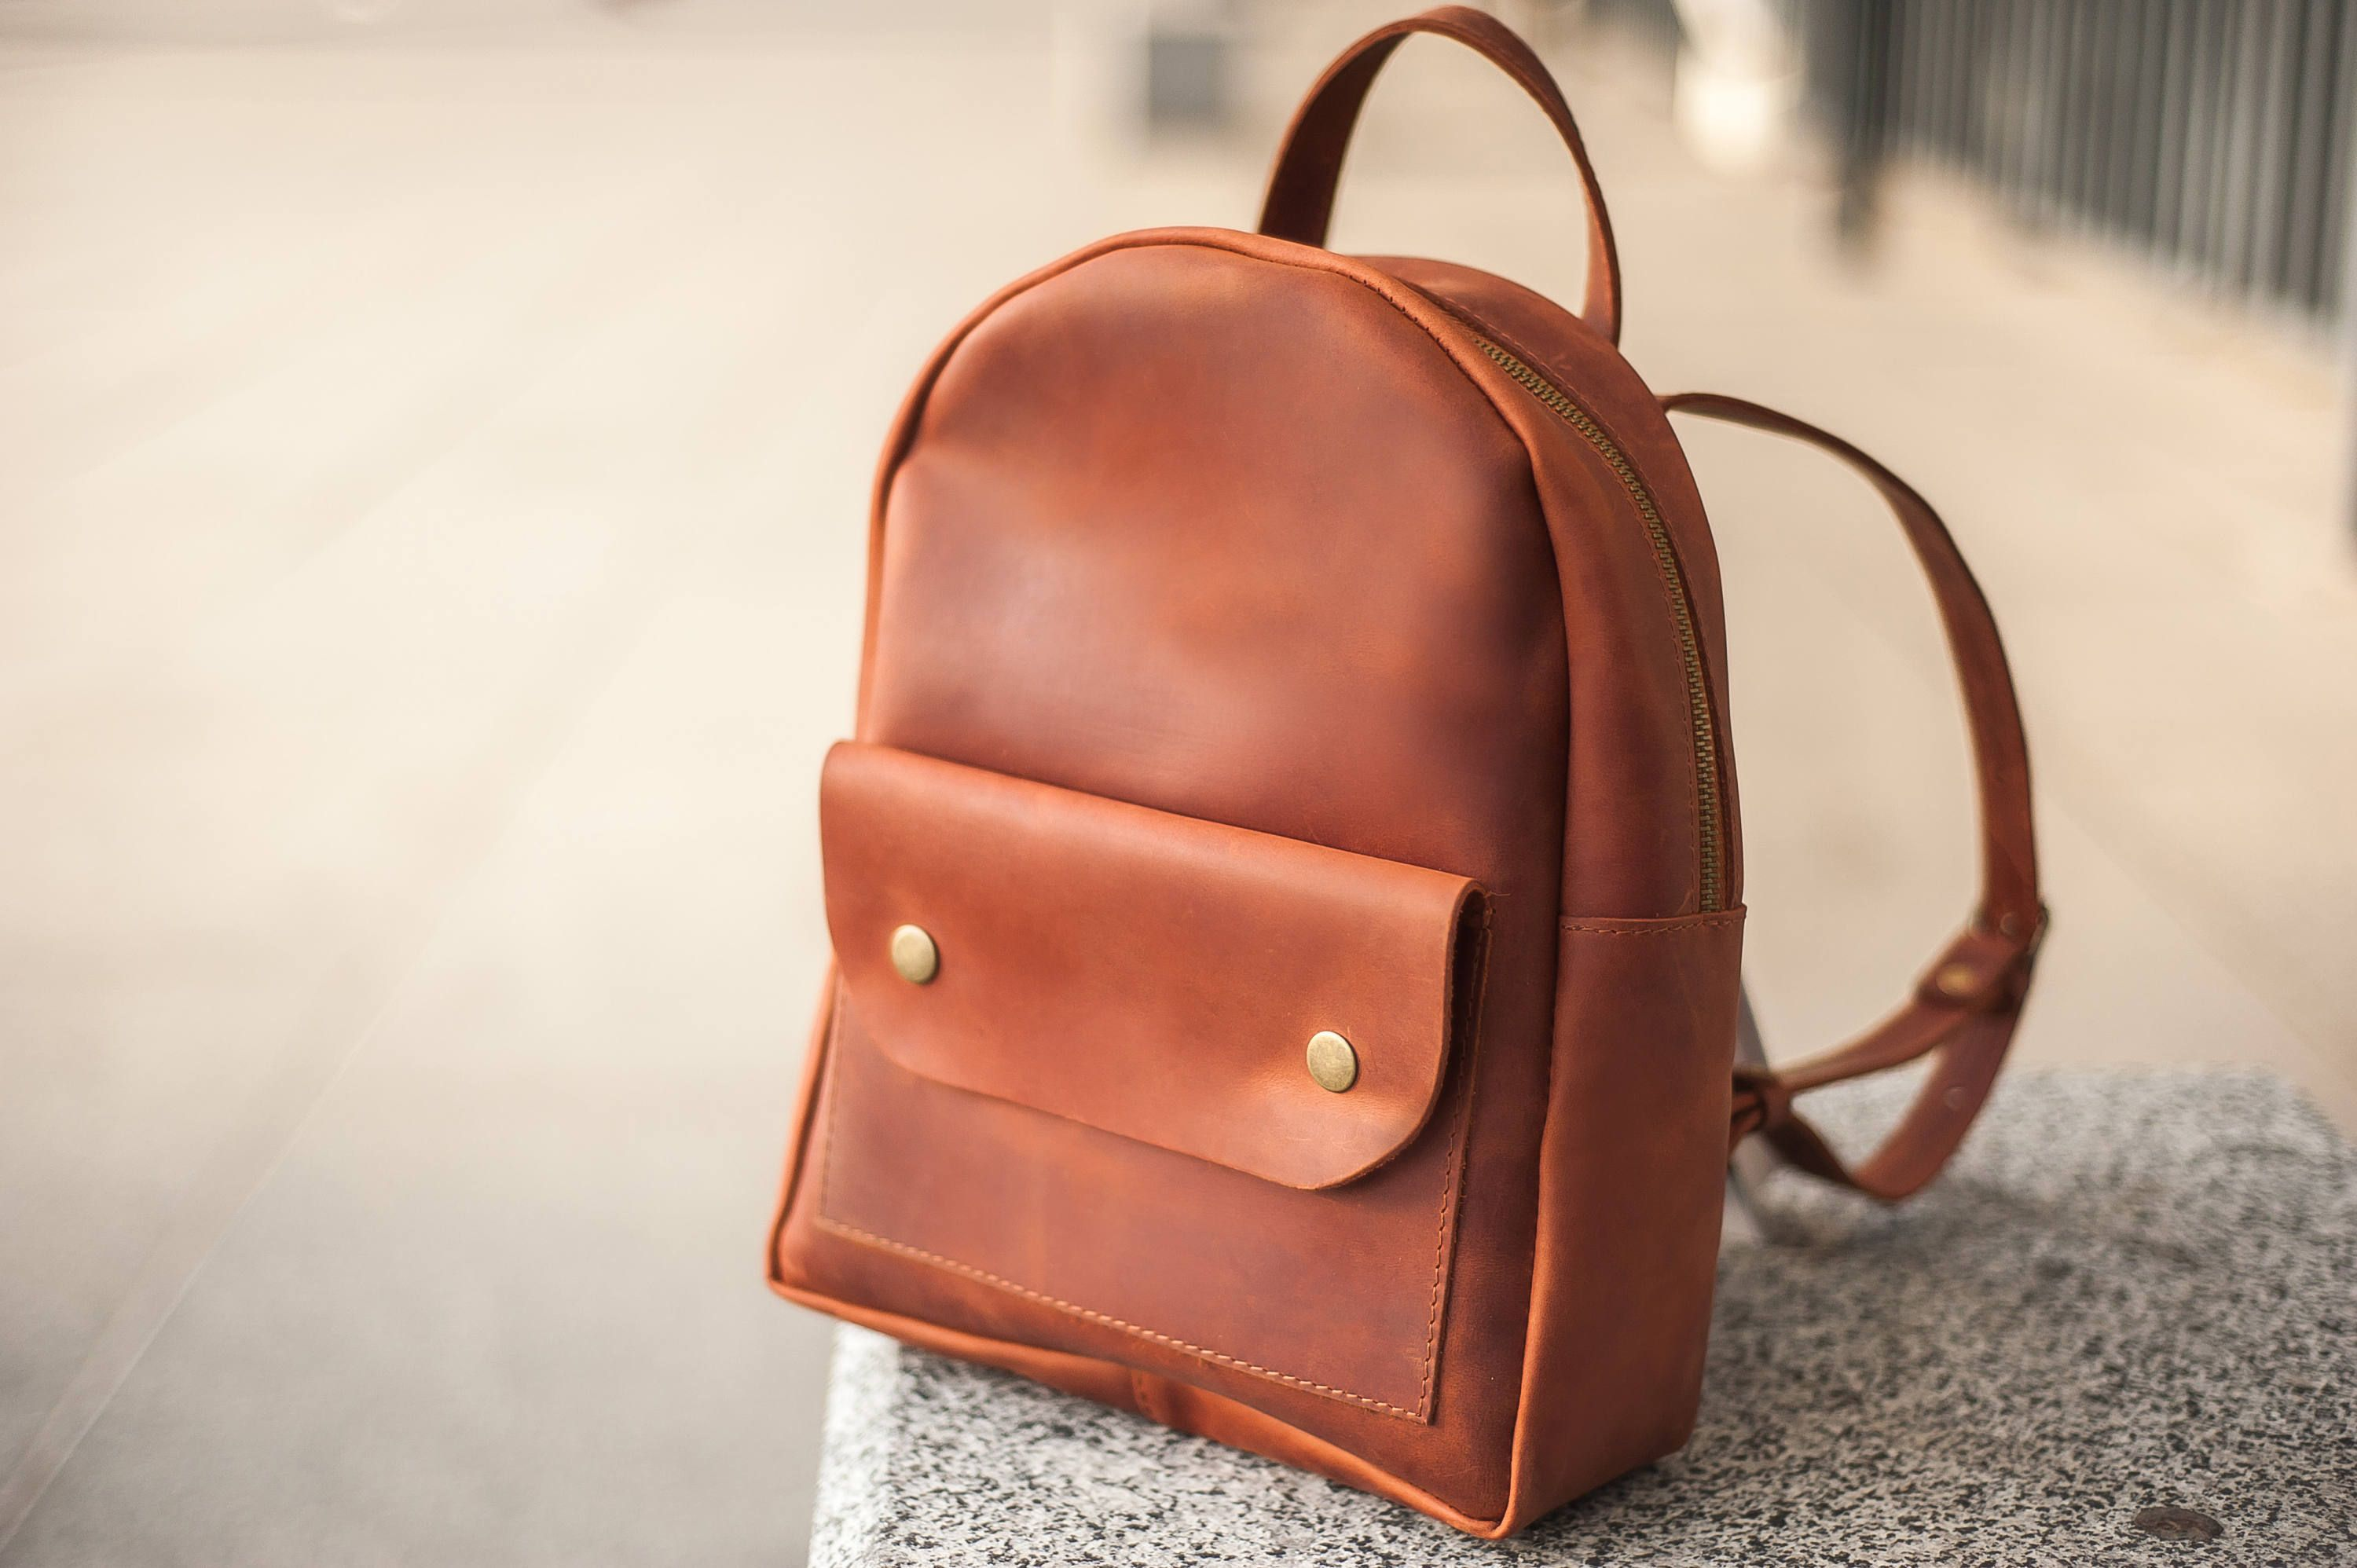 c573475b7eb Mini leather backpack,Leather backpack women,Small Leather Rucksack ...